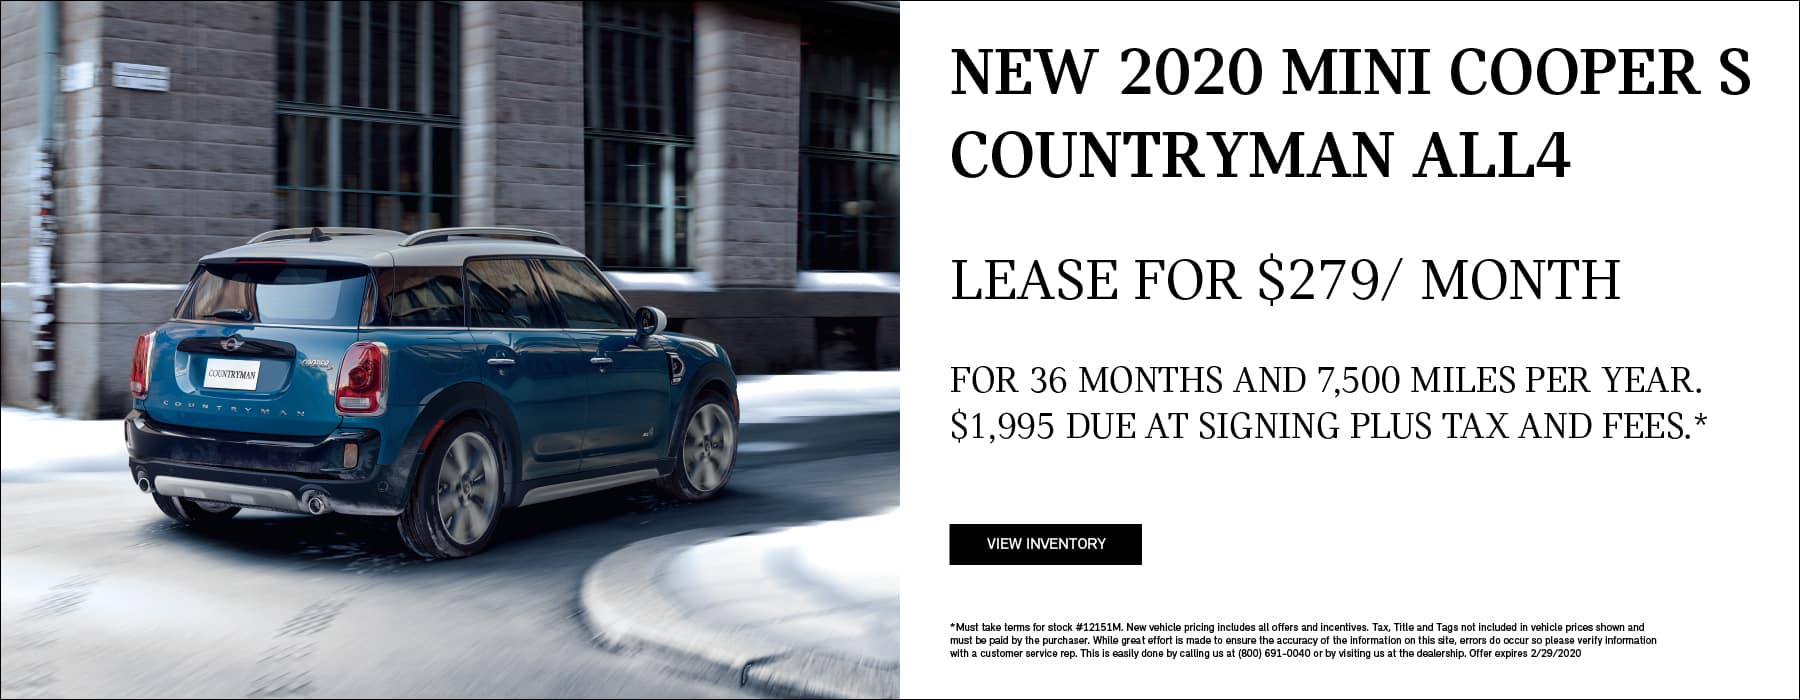 NEW 2020 MINI COOPER S COUNTRYMAN ALL4 Lease for $279/month. For 36 months and 7,500 miles per year. $1,995 due at signing plus tax and fees.*